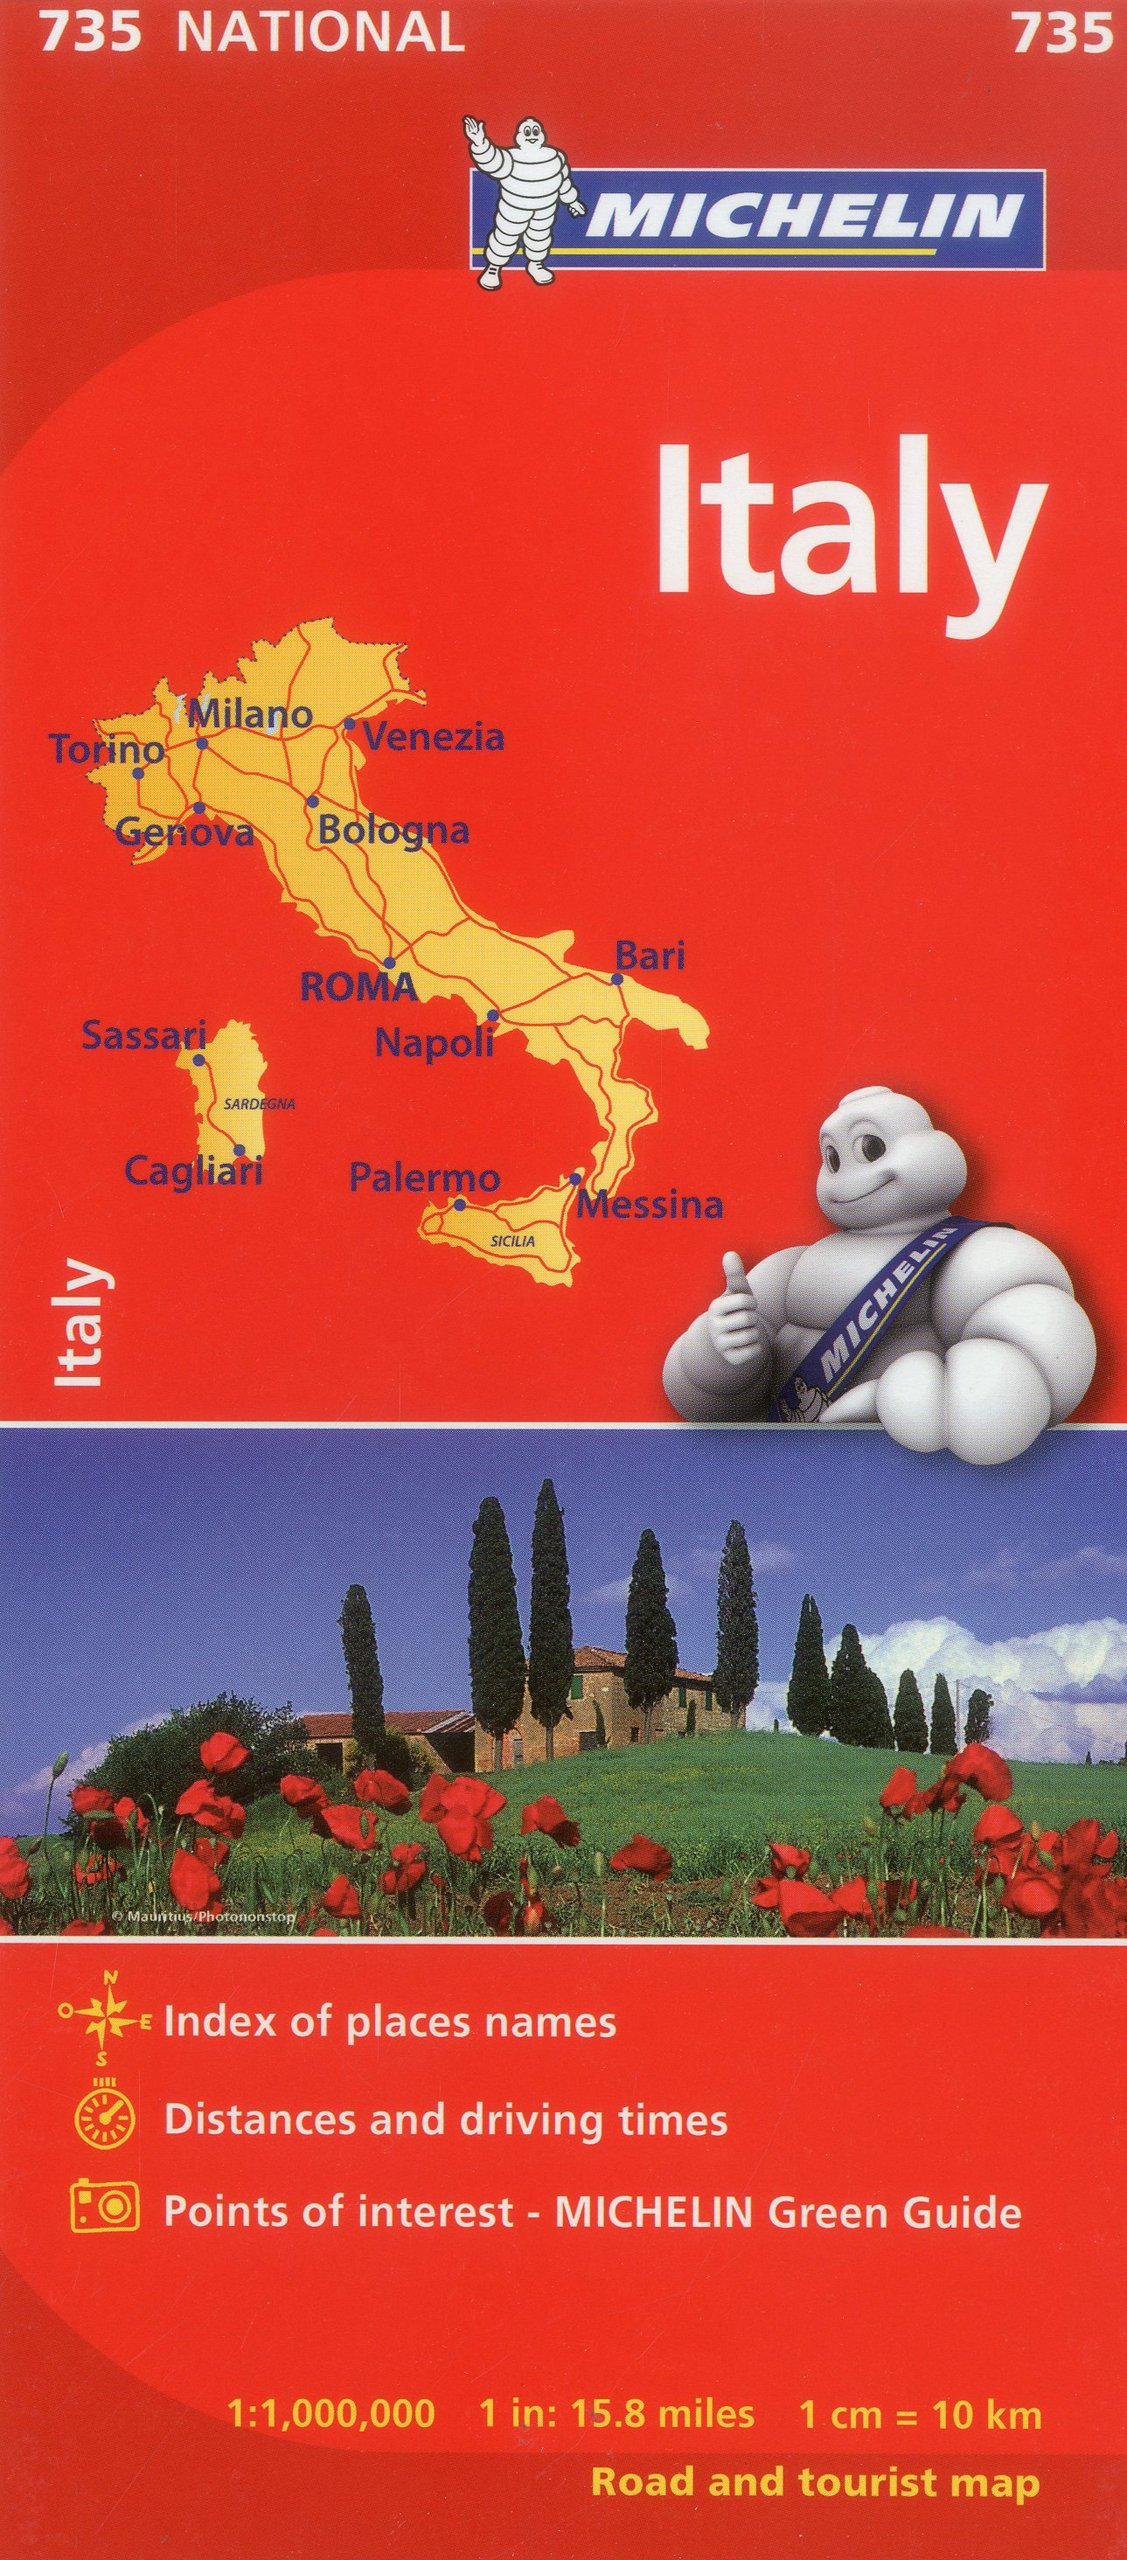 Map Of Italy In English.Michelin Italy Map 735 Maps Country Michelin Italian English